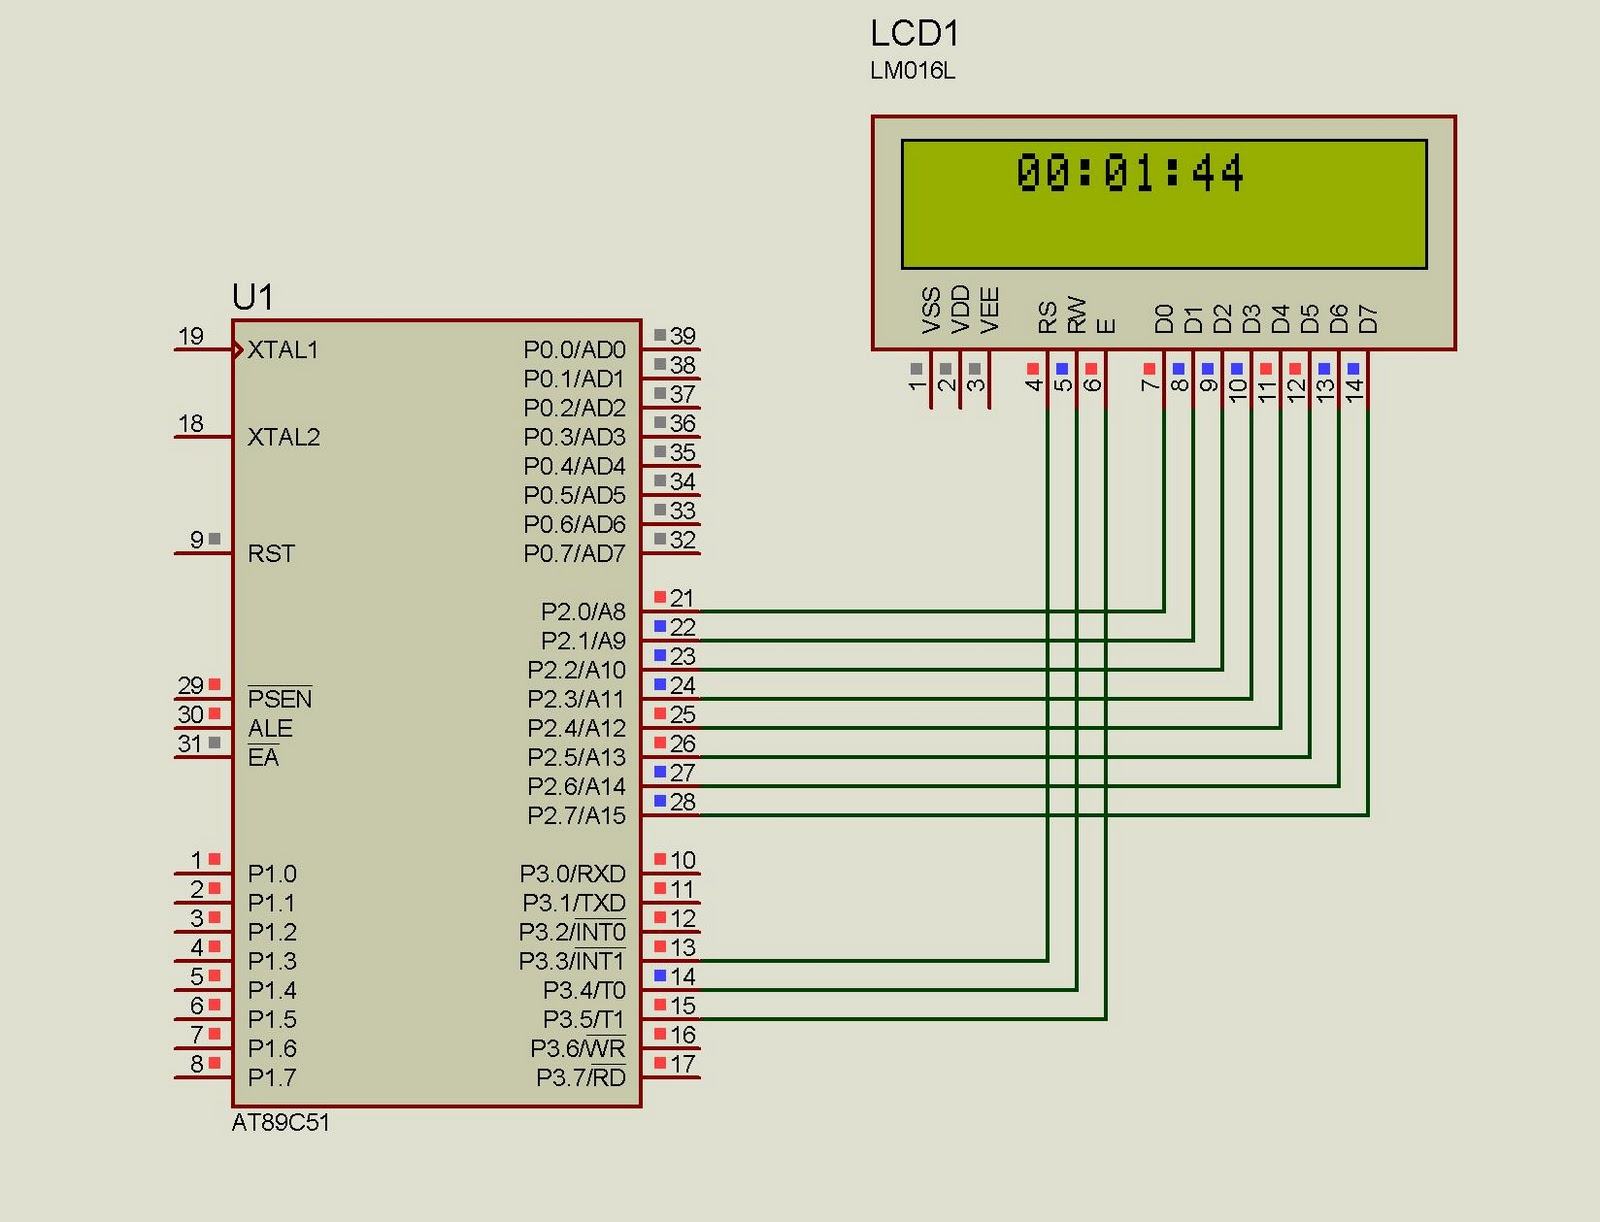 LCD CLOCK USING 8051 (89s51) Microcontroller Under